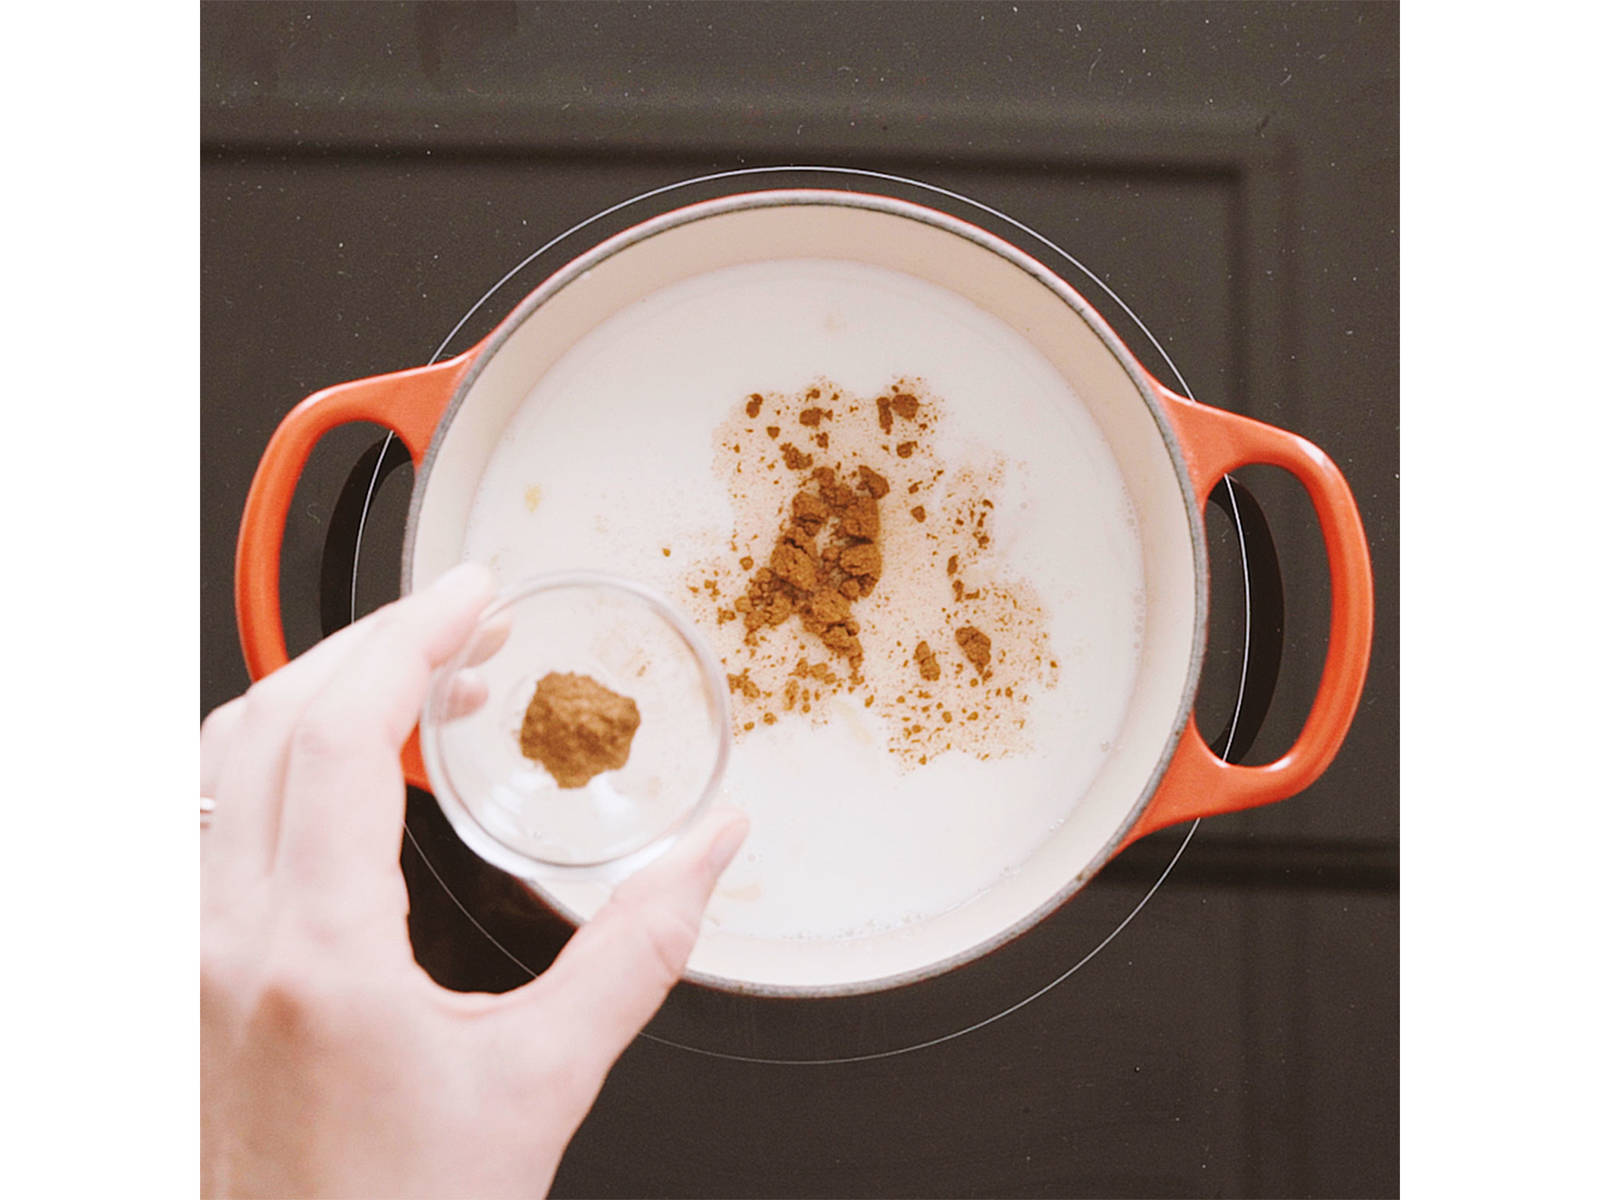 Add milk, water, pinch salt, maple syrup, cinnamon, and nutmeg to pan and bring to a simmer over medium heat.